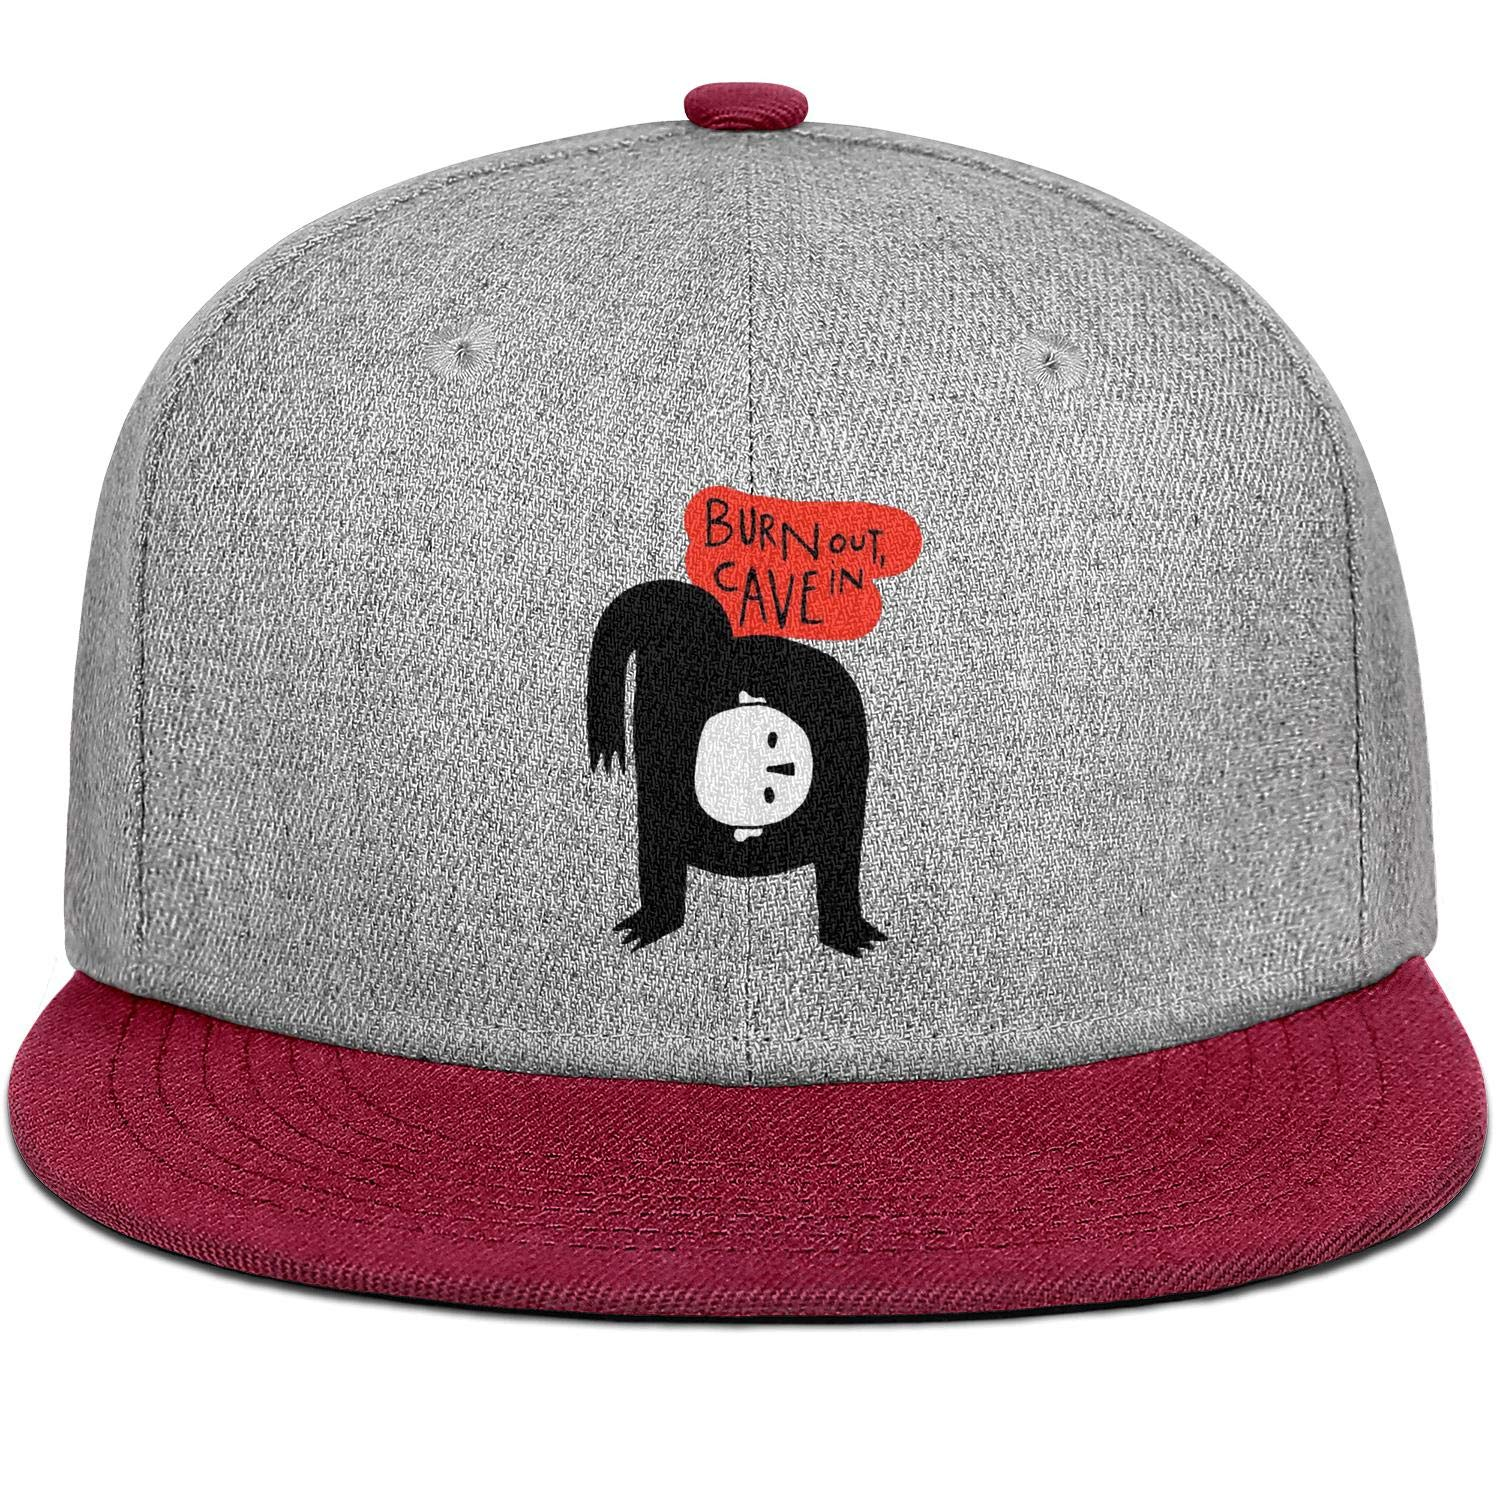 Mans Woman Kanye-West-The-Life-of-Pablo-Tour-red Cap Casual Hats Running Caps